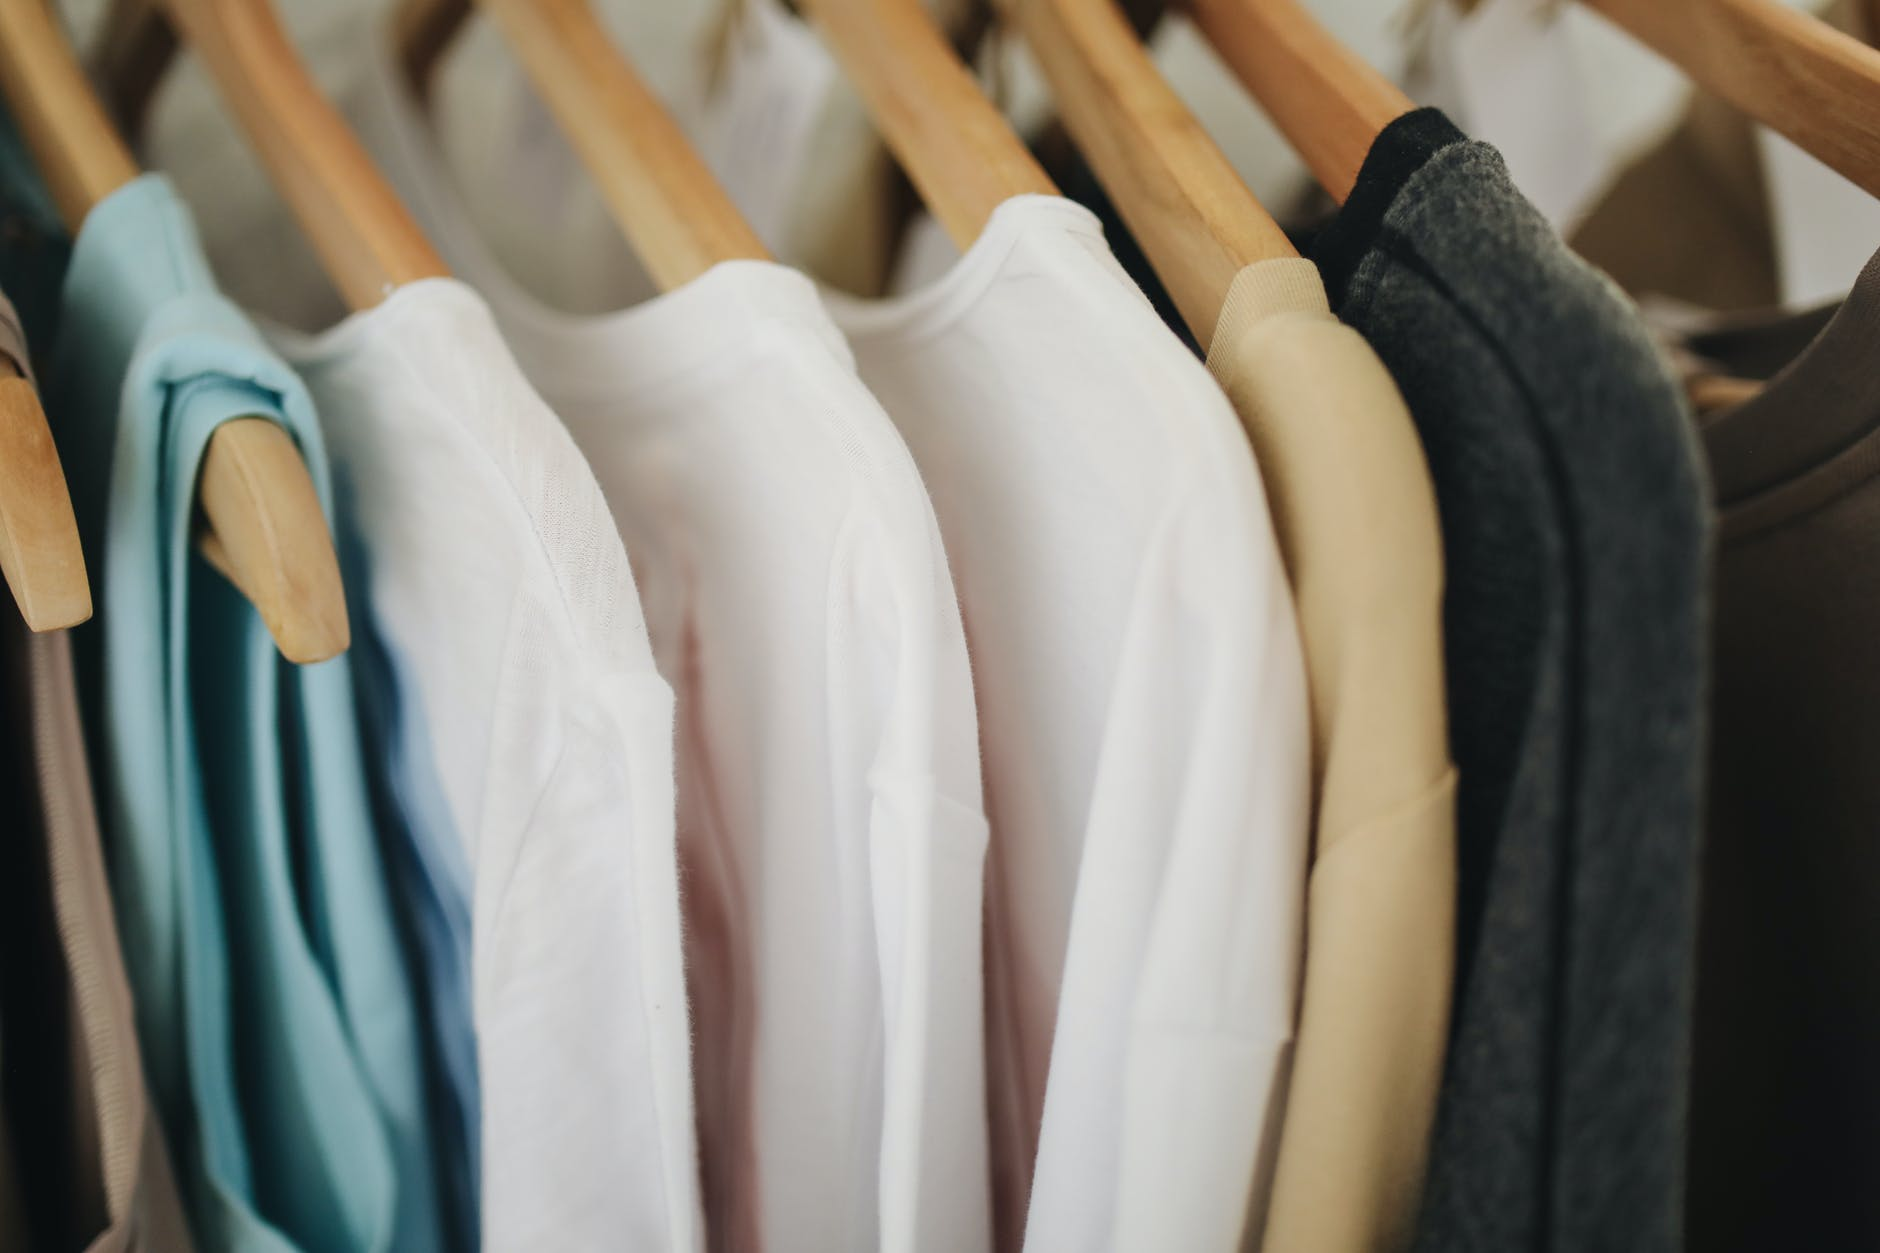 white long sleeves shirts on brown wooden clothes hanger